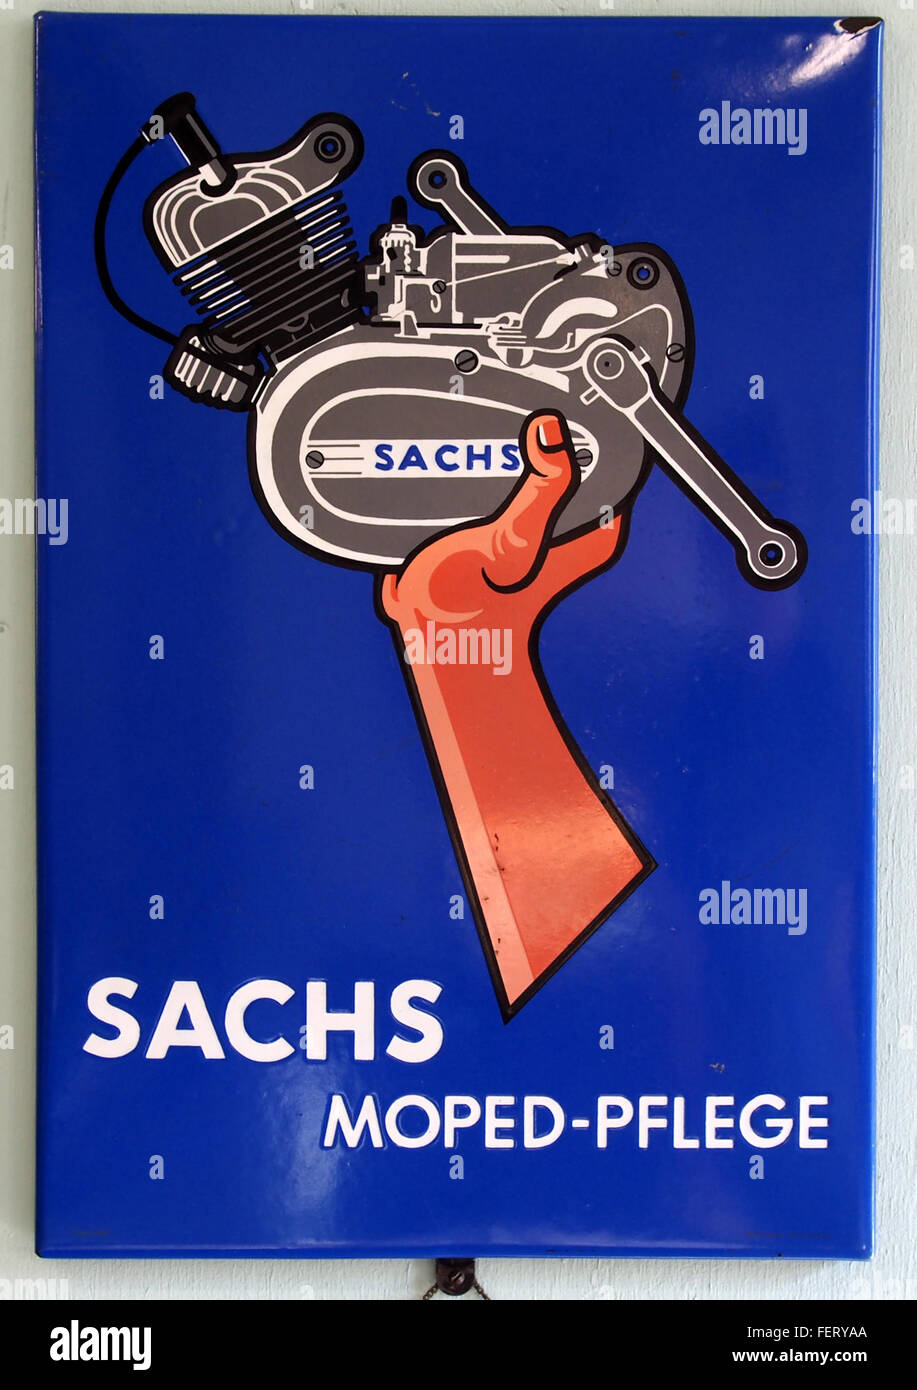 Sachs Moped-Pflege, Emaille werbung - Stock Image